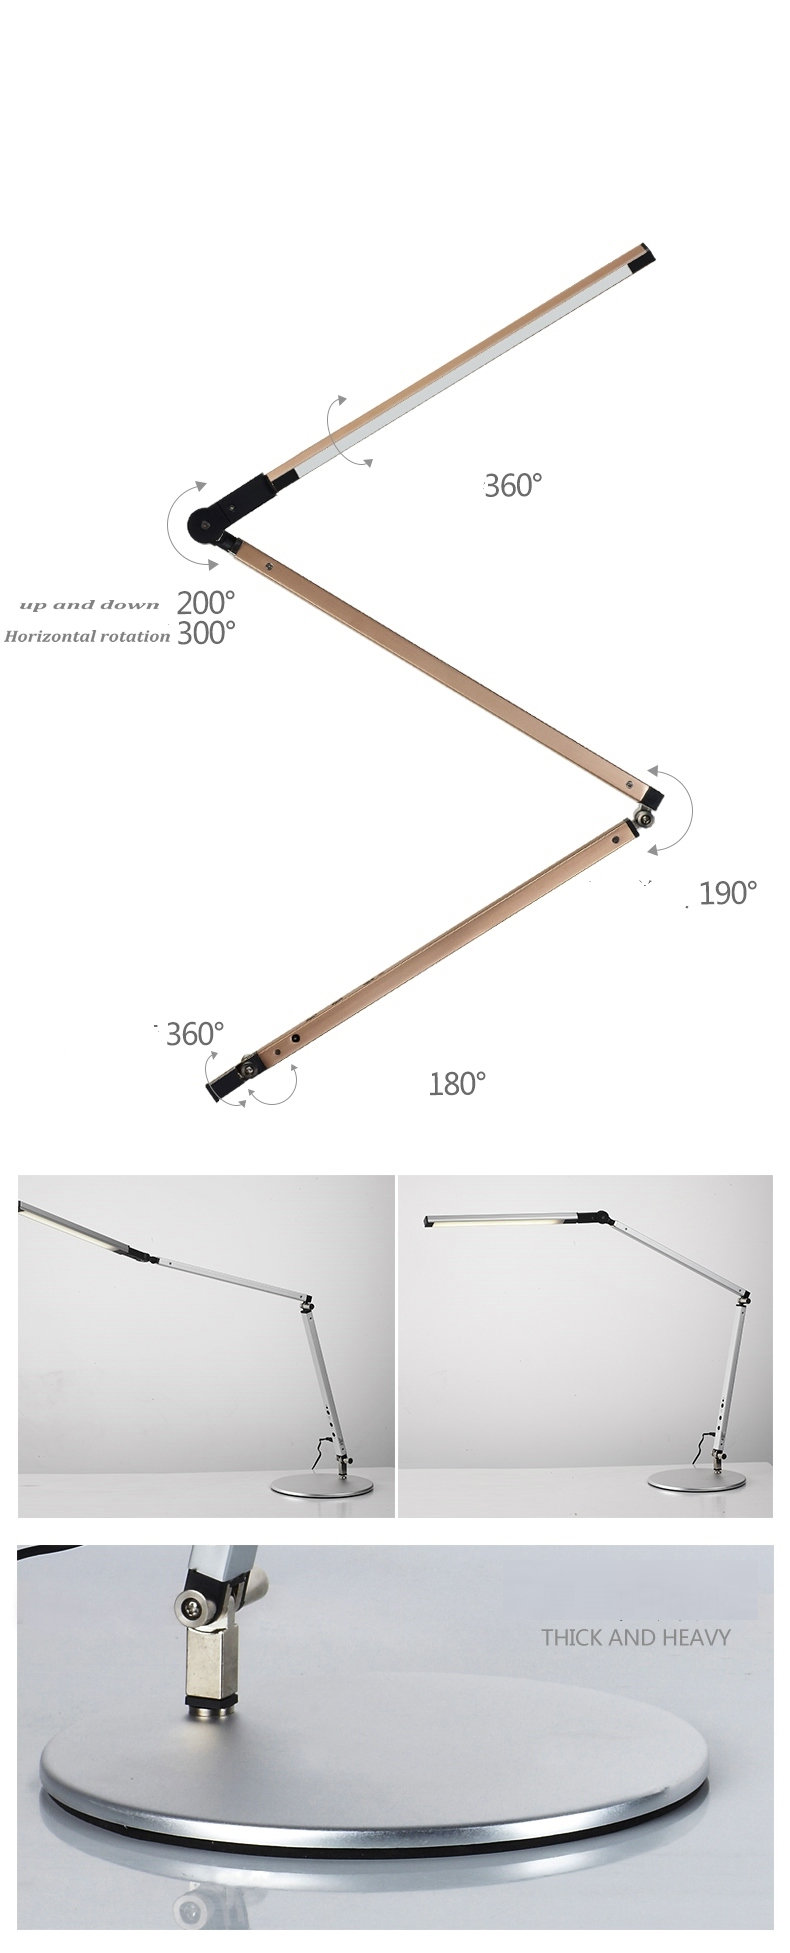 Artpad Energy Saving Modern LED Desk Lamp Dimmer Eye Care Swing Long Arm Business Office Study Desktop Light for Table Luminaire 6